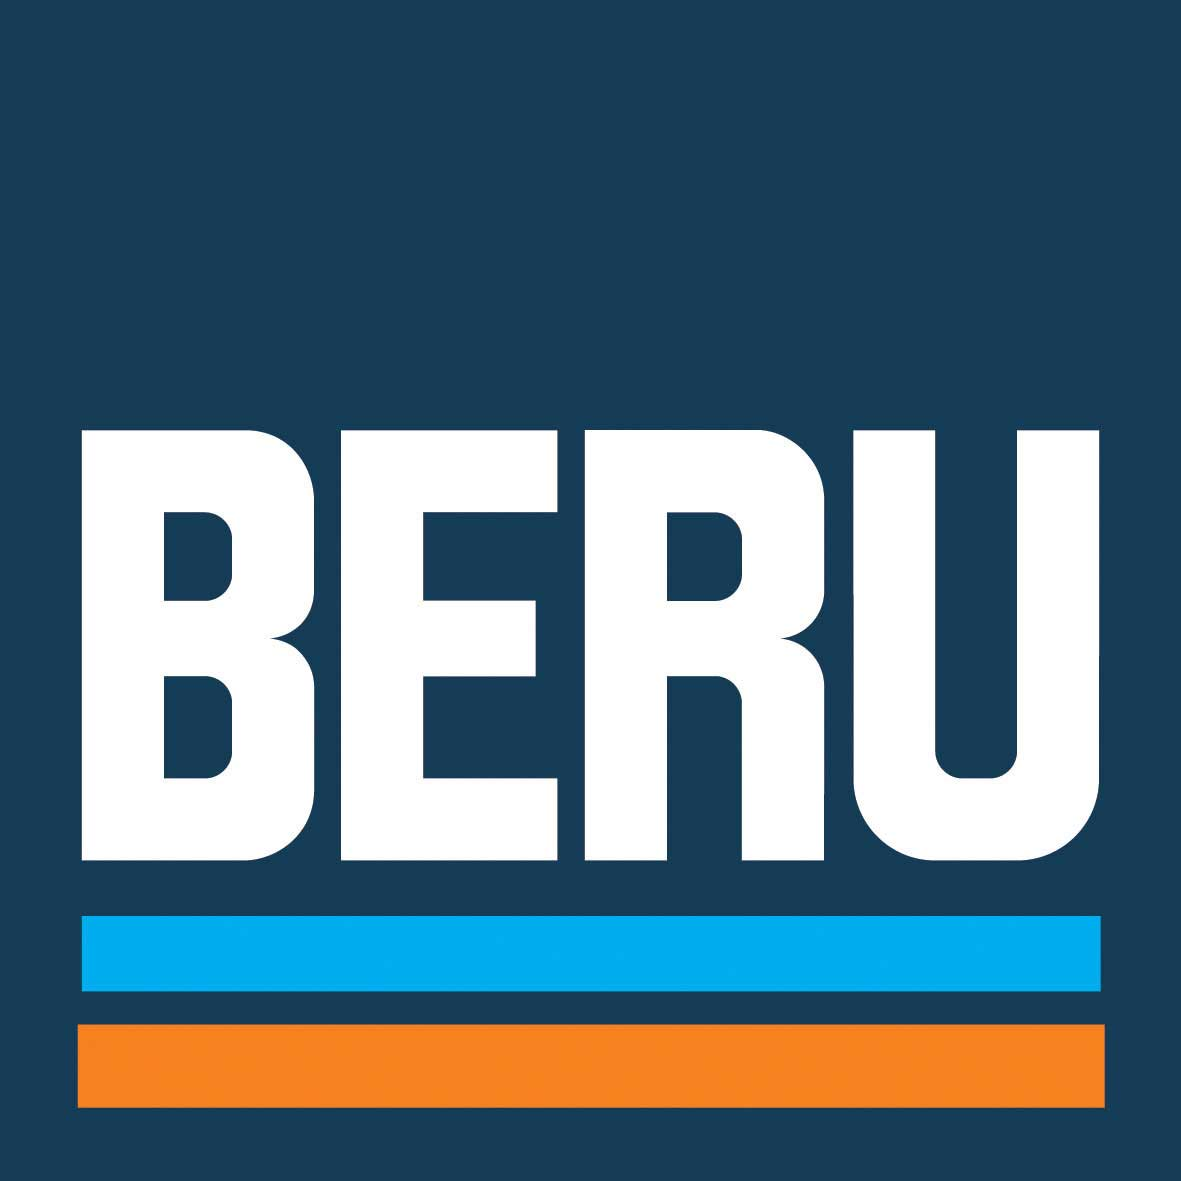 BERU for fiat diesel engines uk